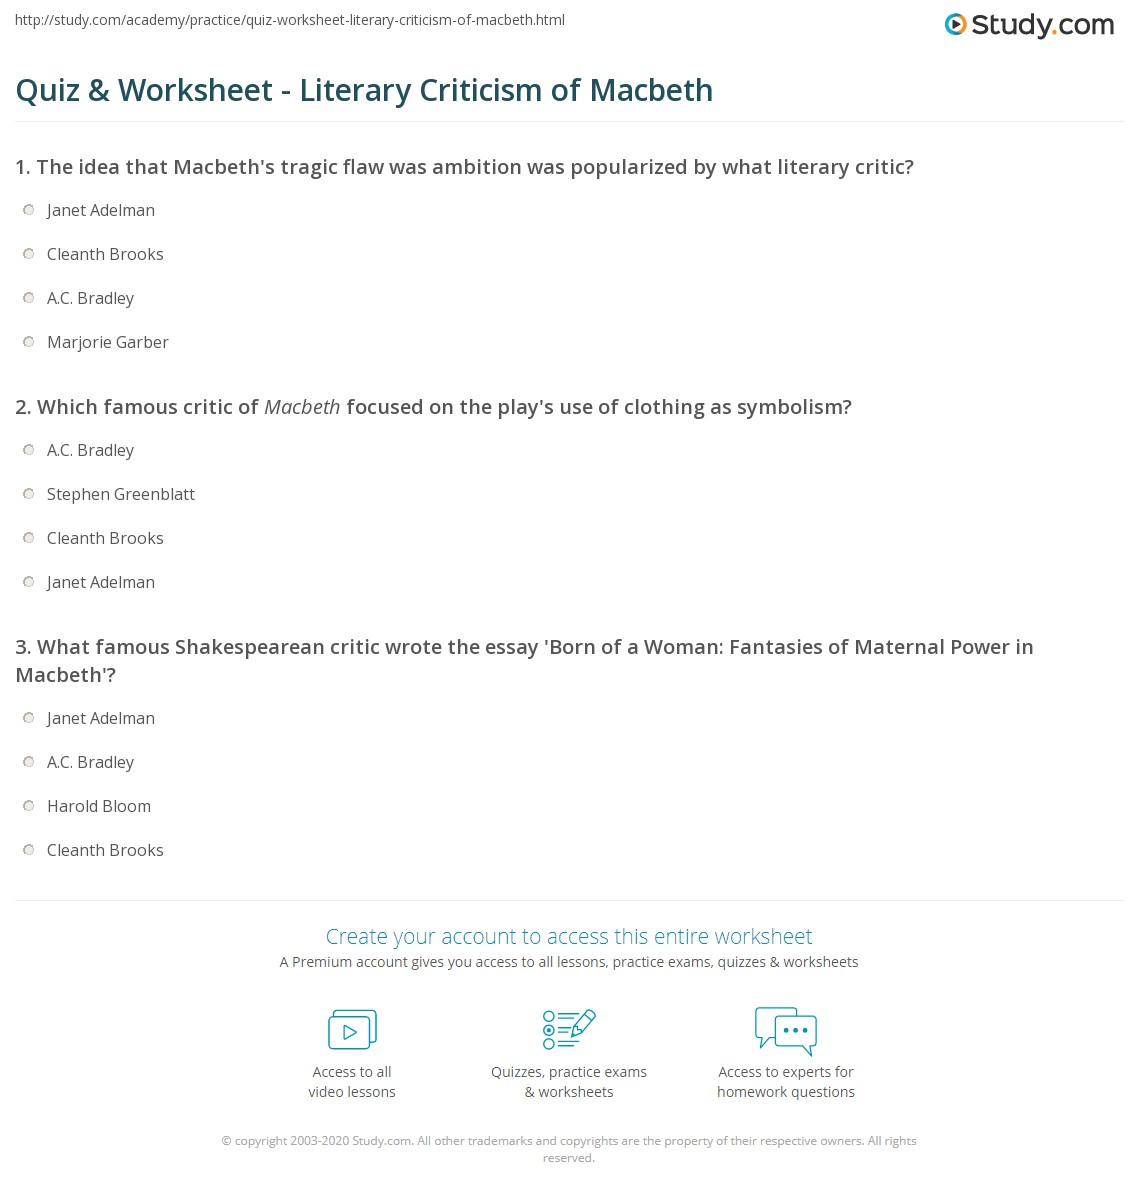 quiz worksheet literary criticism of macbeth com print macbeth literary criticism worksheet